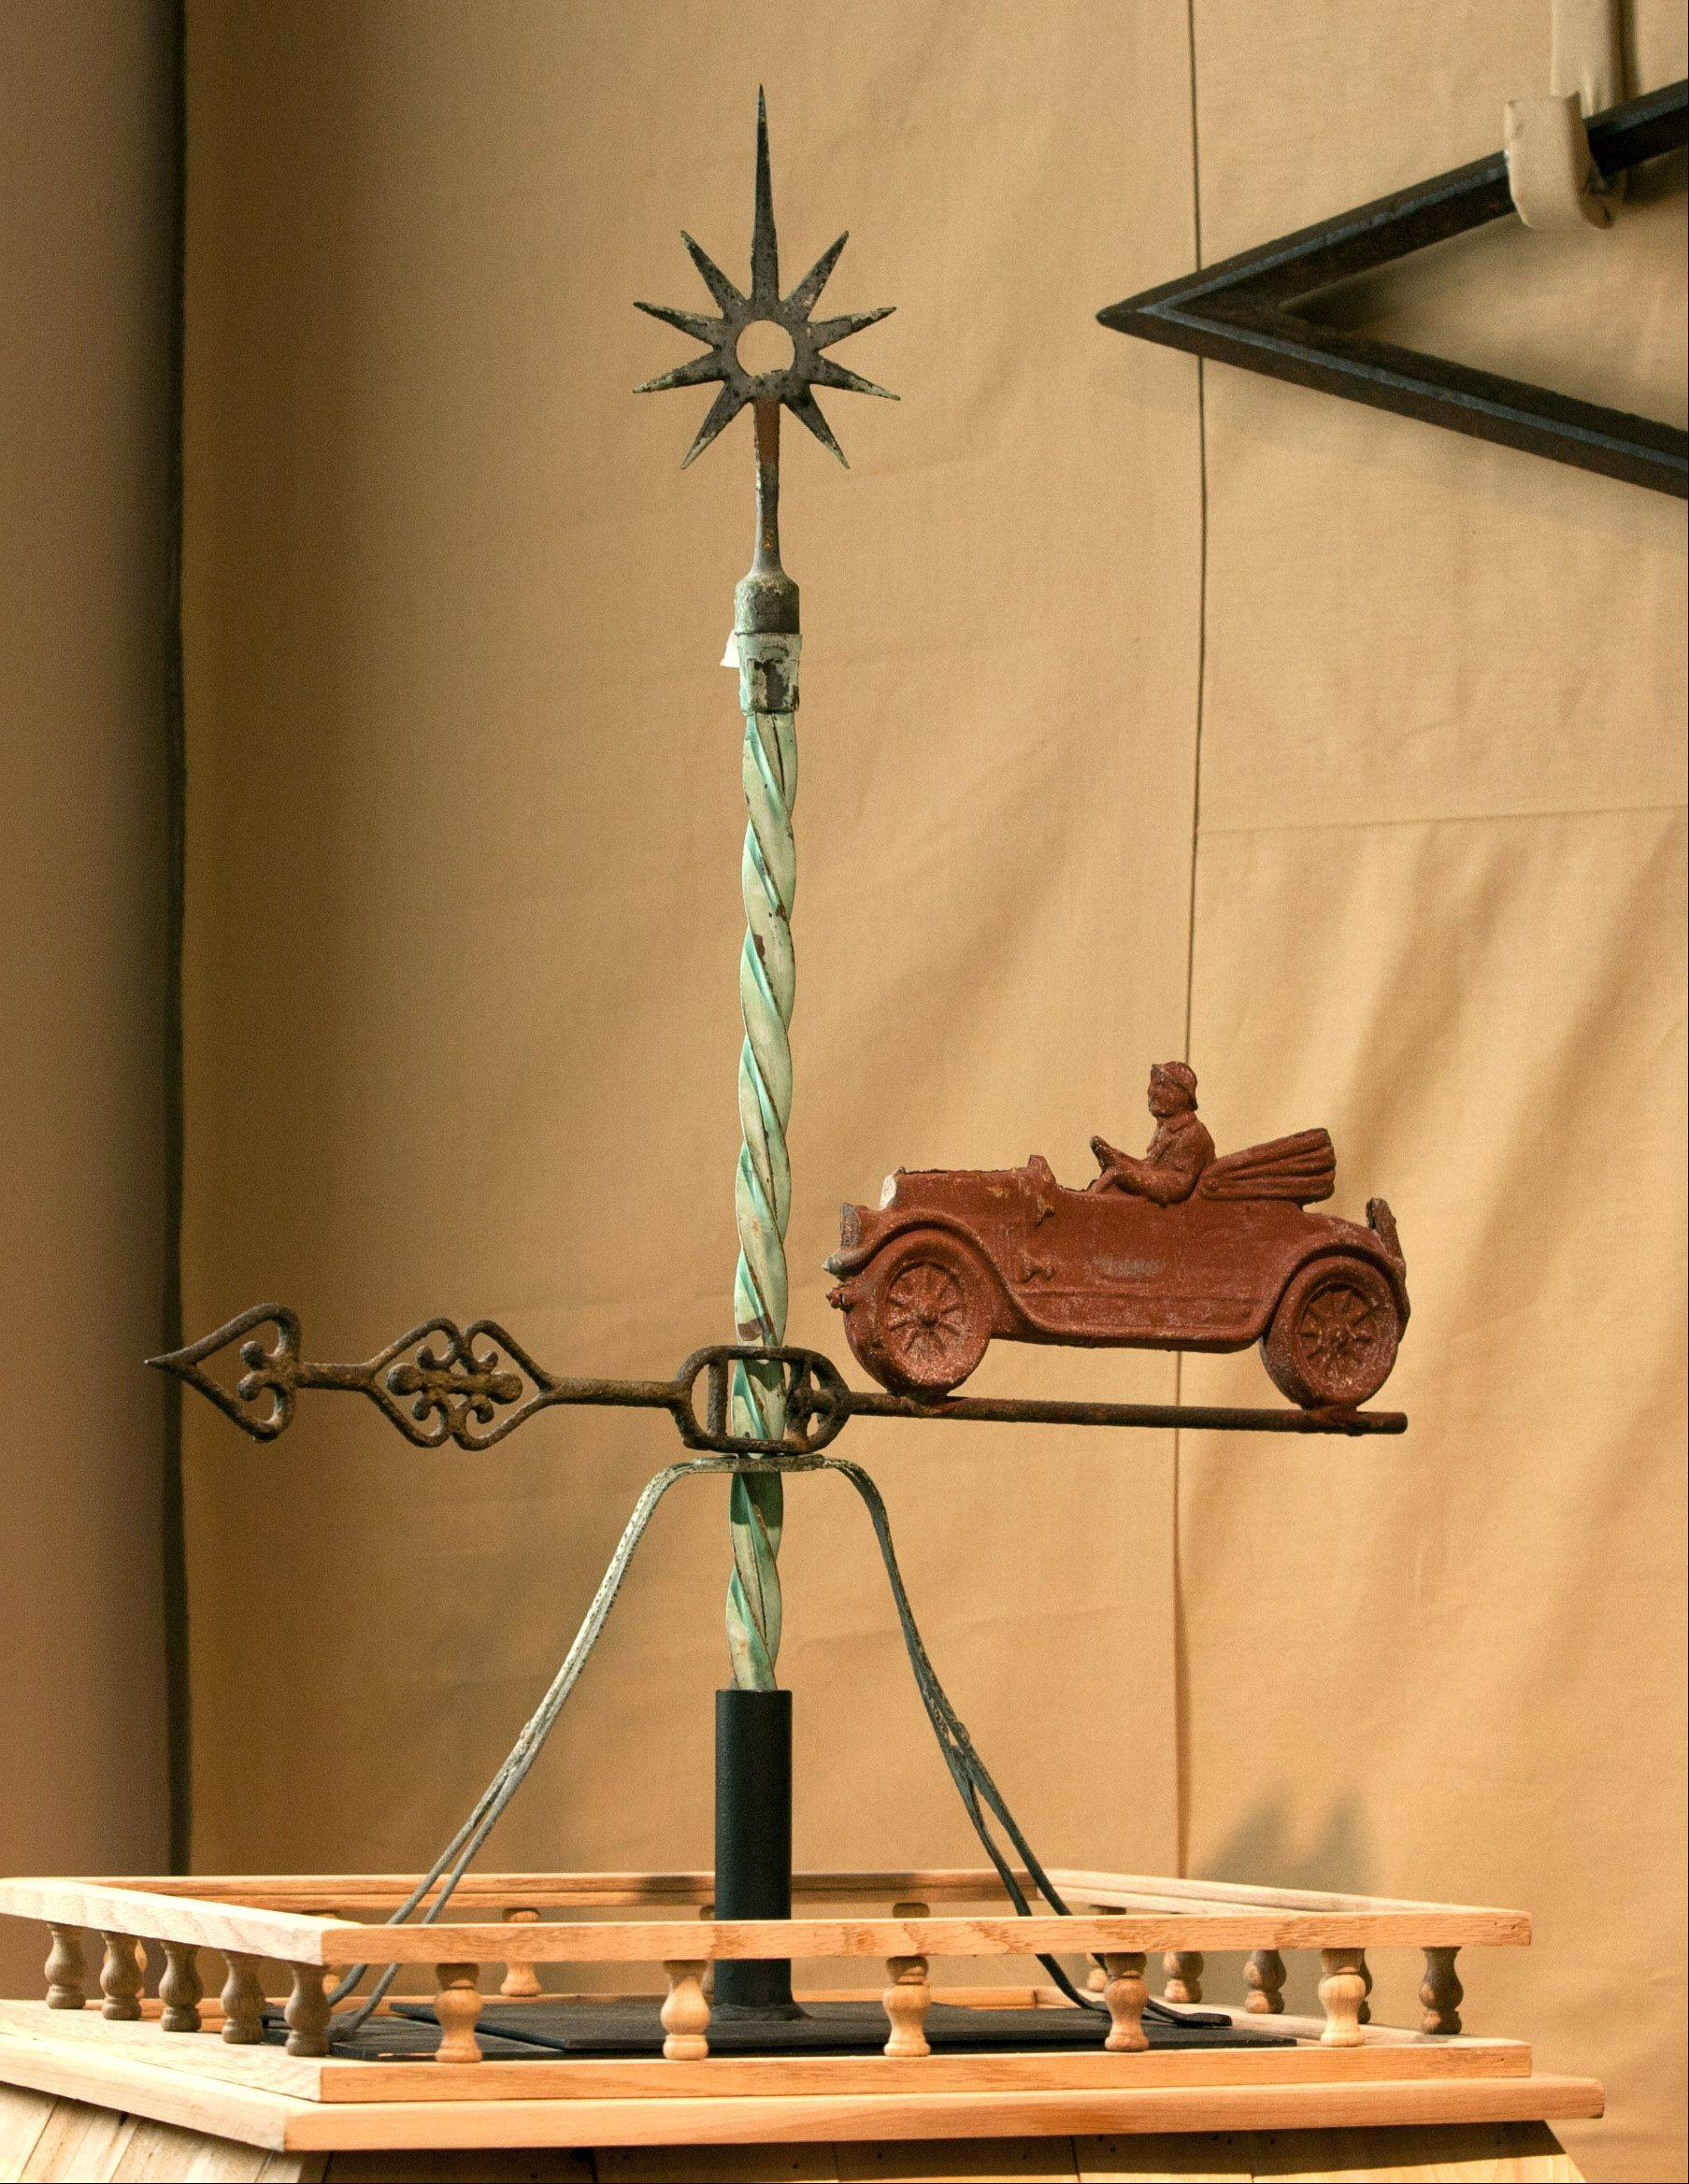 Weather vanes also served as lightning rods and became common fixtures on Midwest buildings. This one with a car might have been on top of a garage, while one shaped like a horse might have stood over a barn.